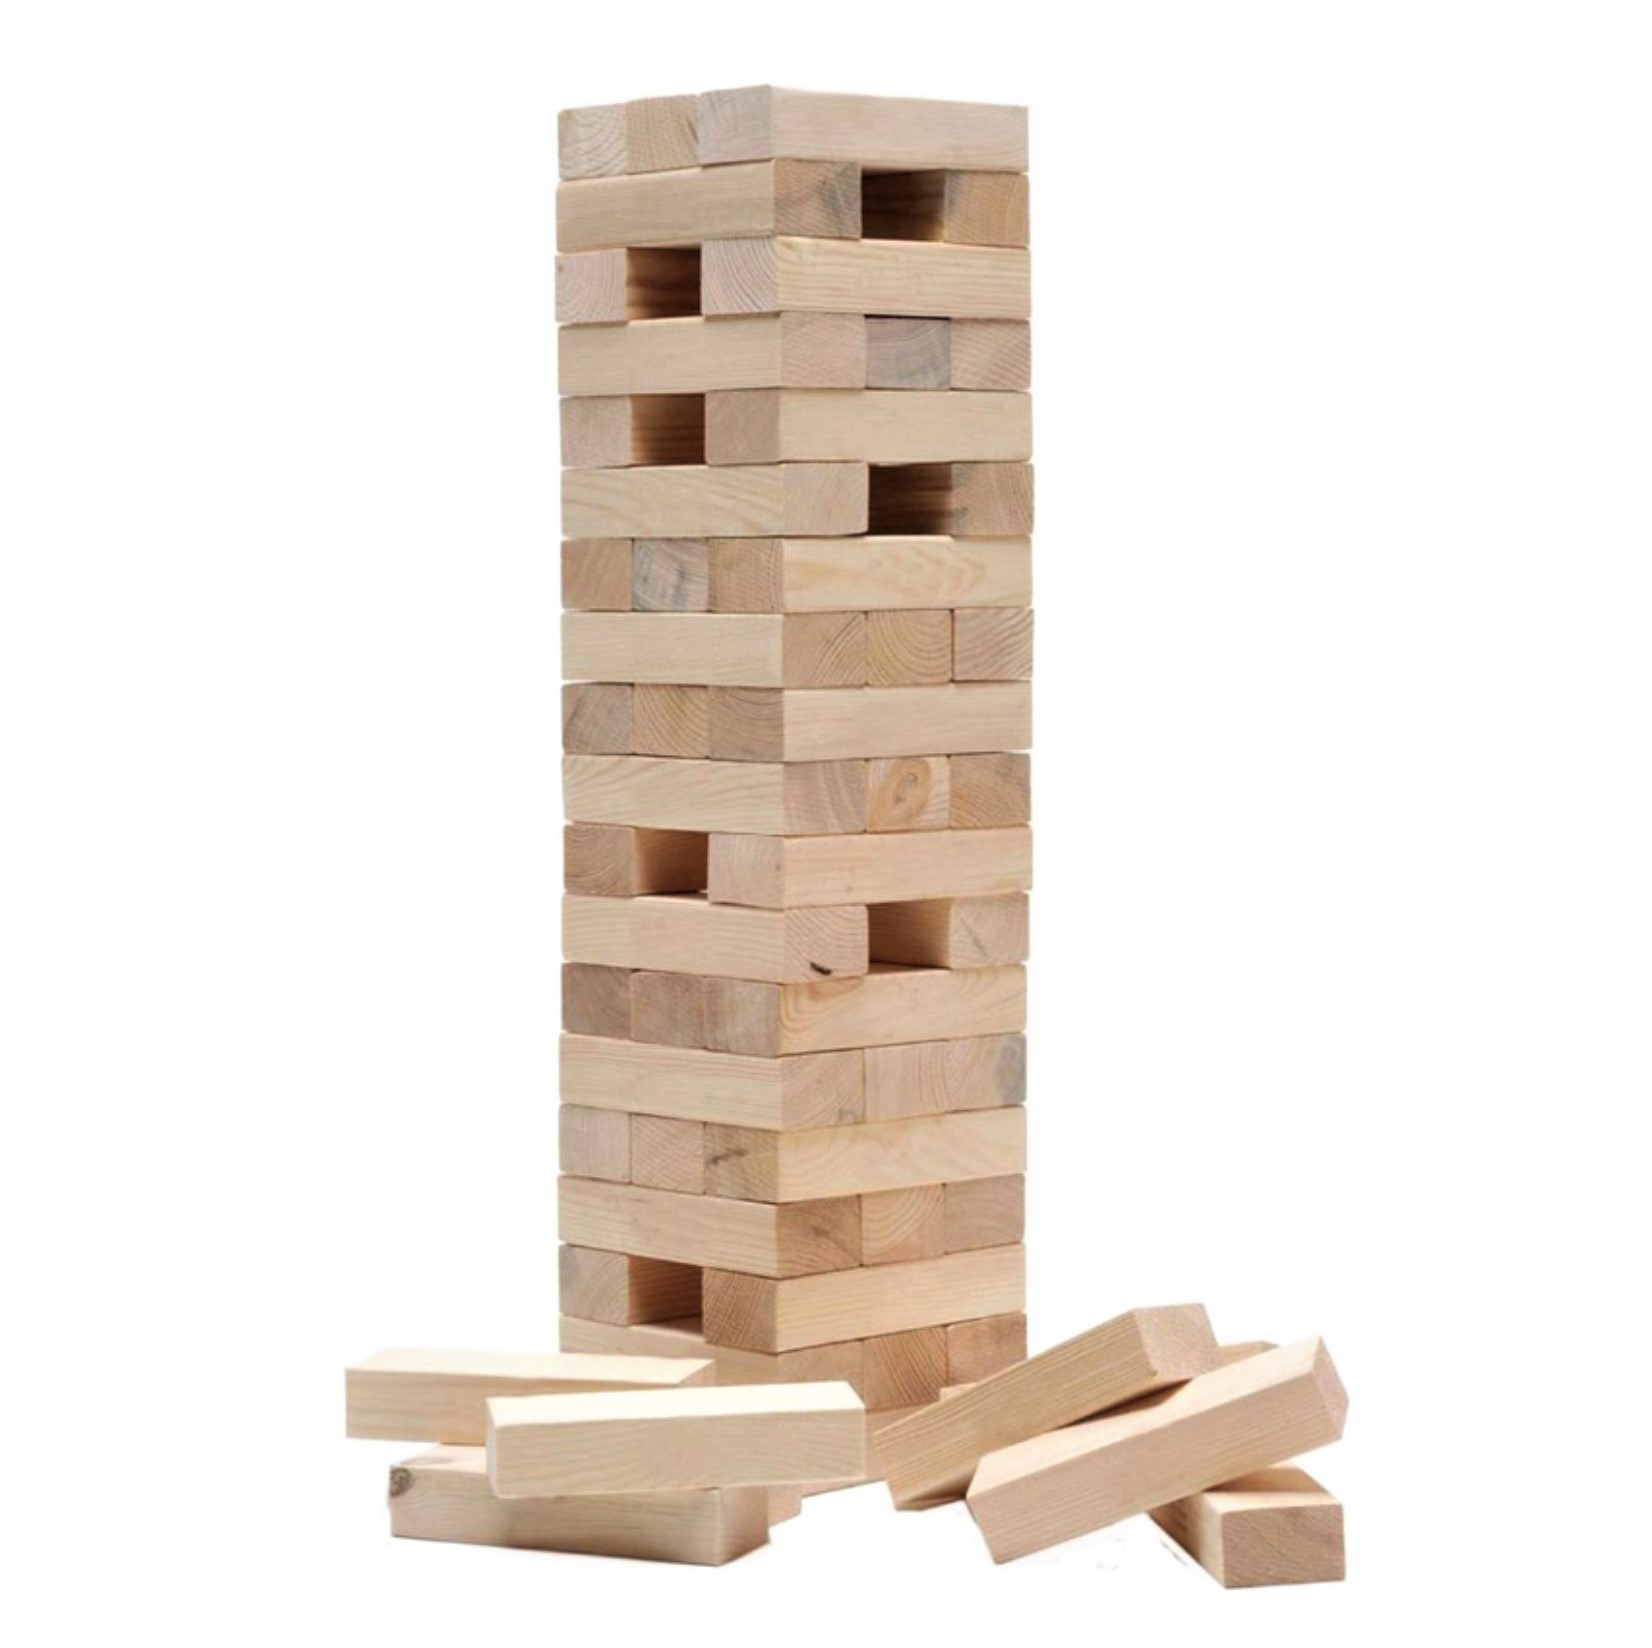 GIANT JENGA / HI TOWER  58 blocks (28.5cm each in length), supplied in storage bag